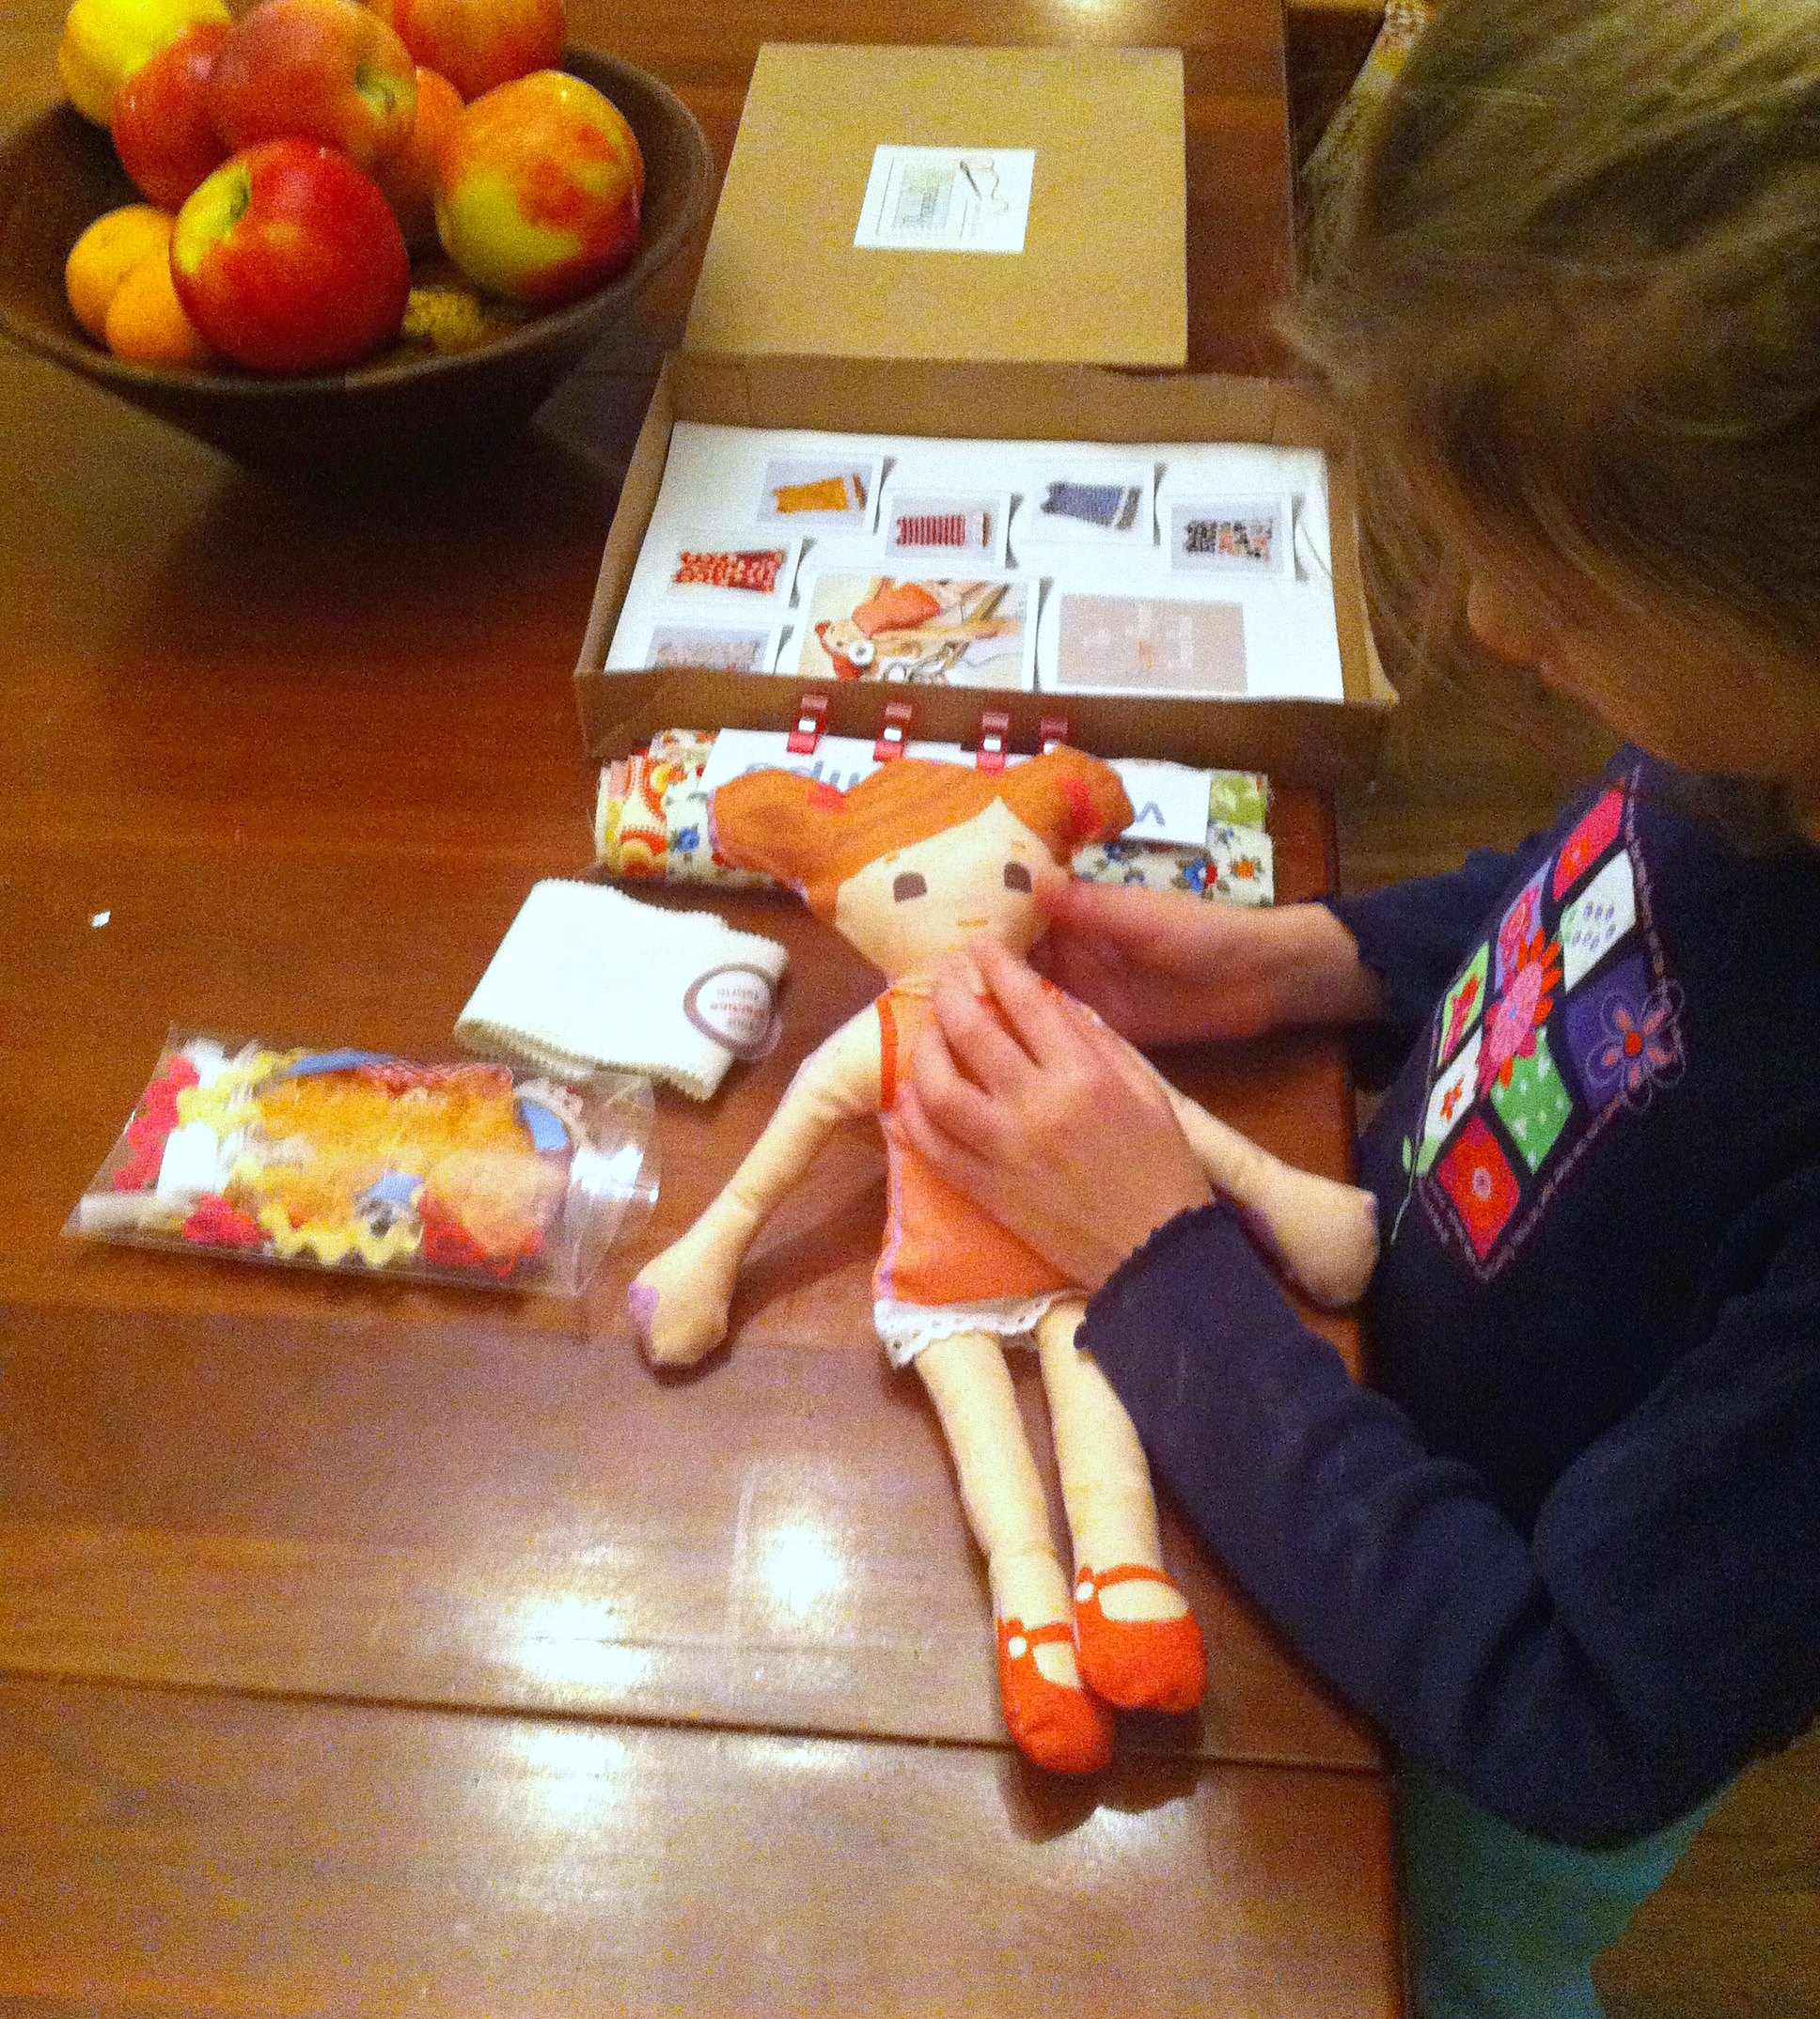 Opening the Learn to Sew kit